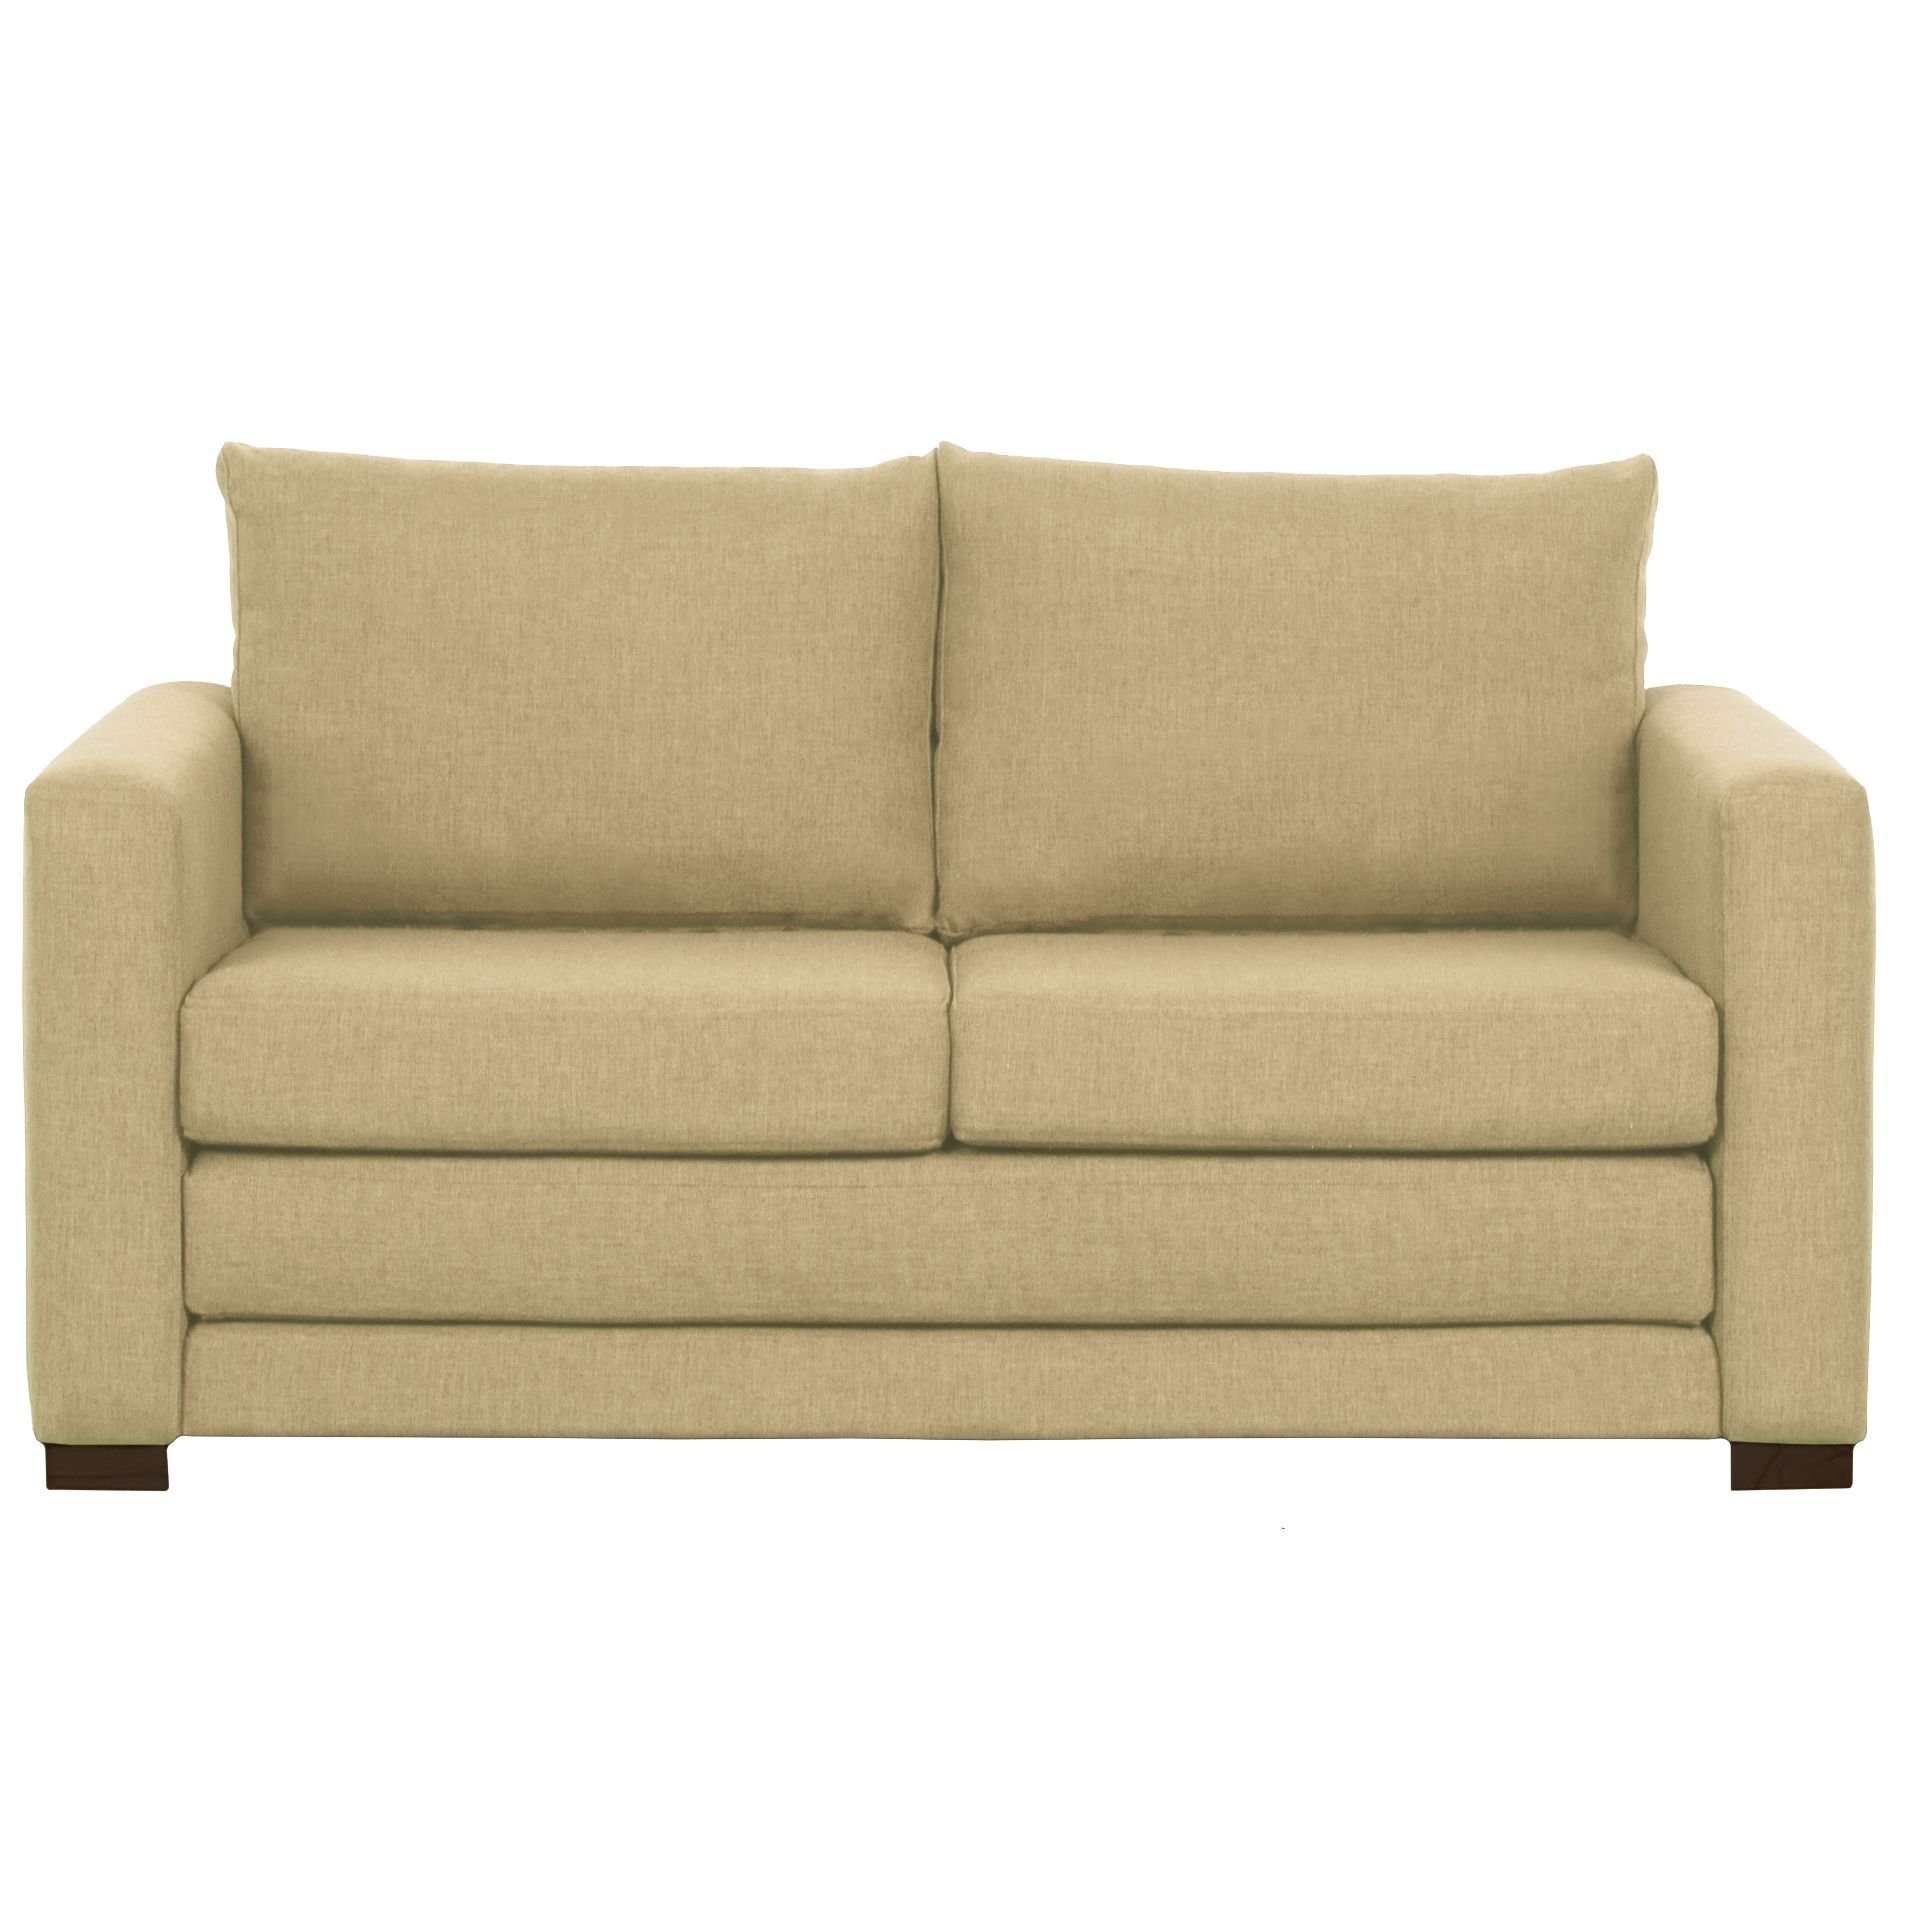 ■sofa bed Open Sofa Bed Asda How To Decorate A Small Room With